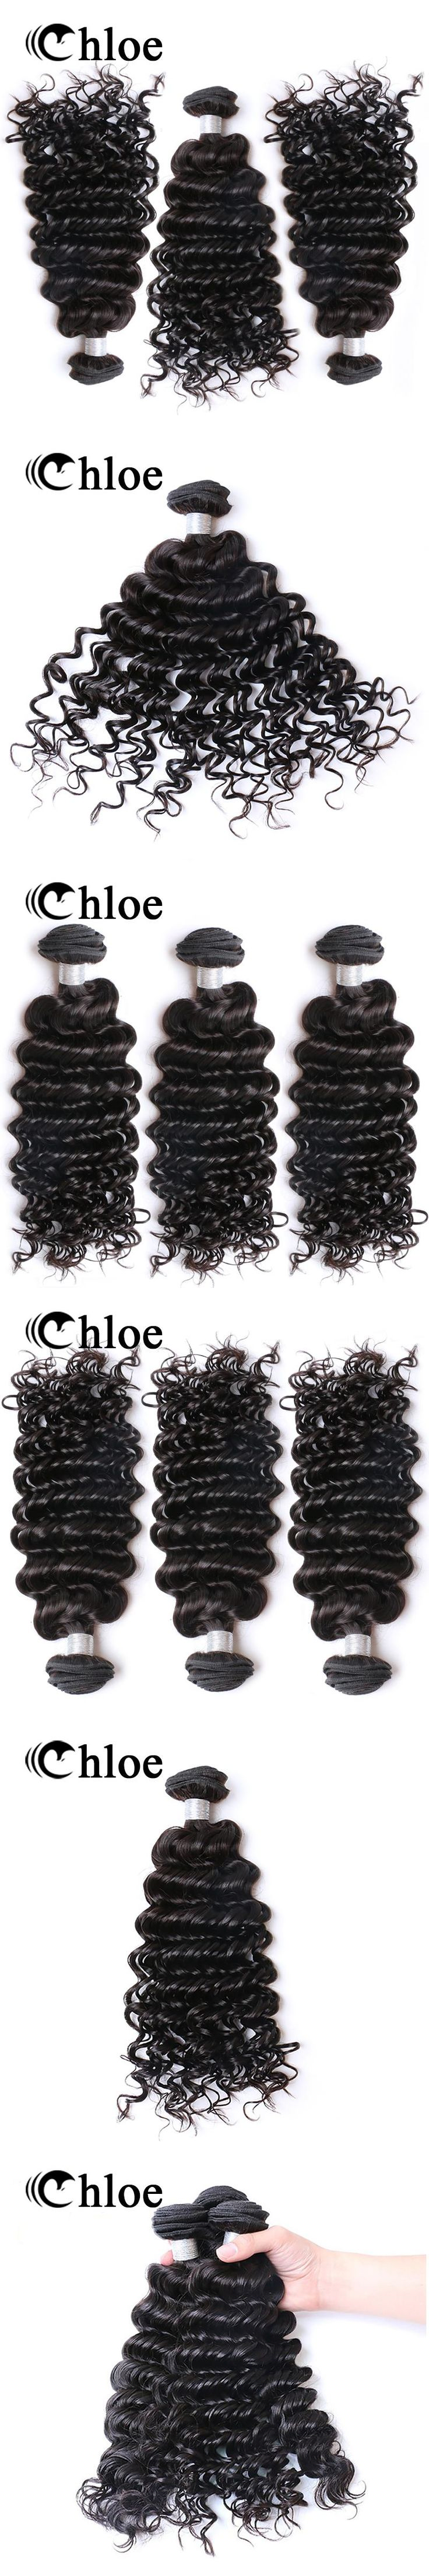 Chloe 100% Human Hair Bundles Brazilian Deep Wave Hair Extensions Natural Black Weave Non Remy Hair 1 Piece only 8-30 inches